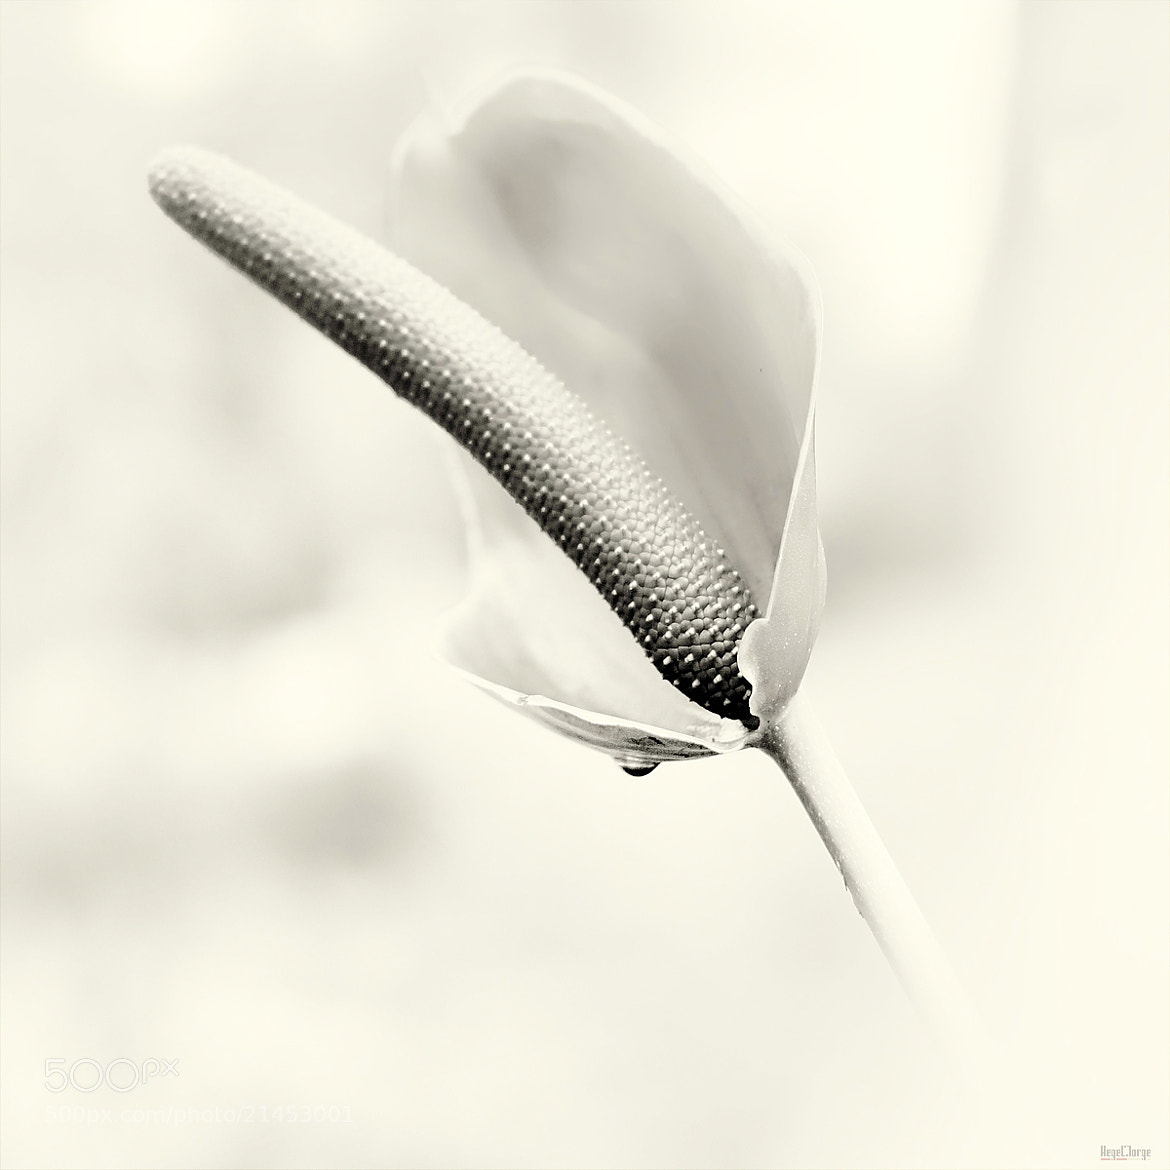 Photograph a drop of whiteness by Hegel Jorge on 500px